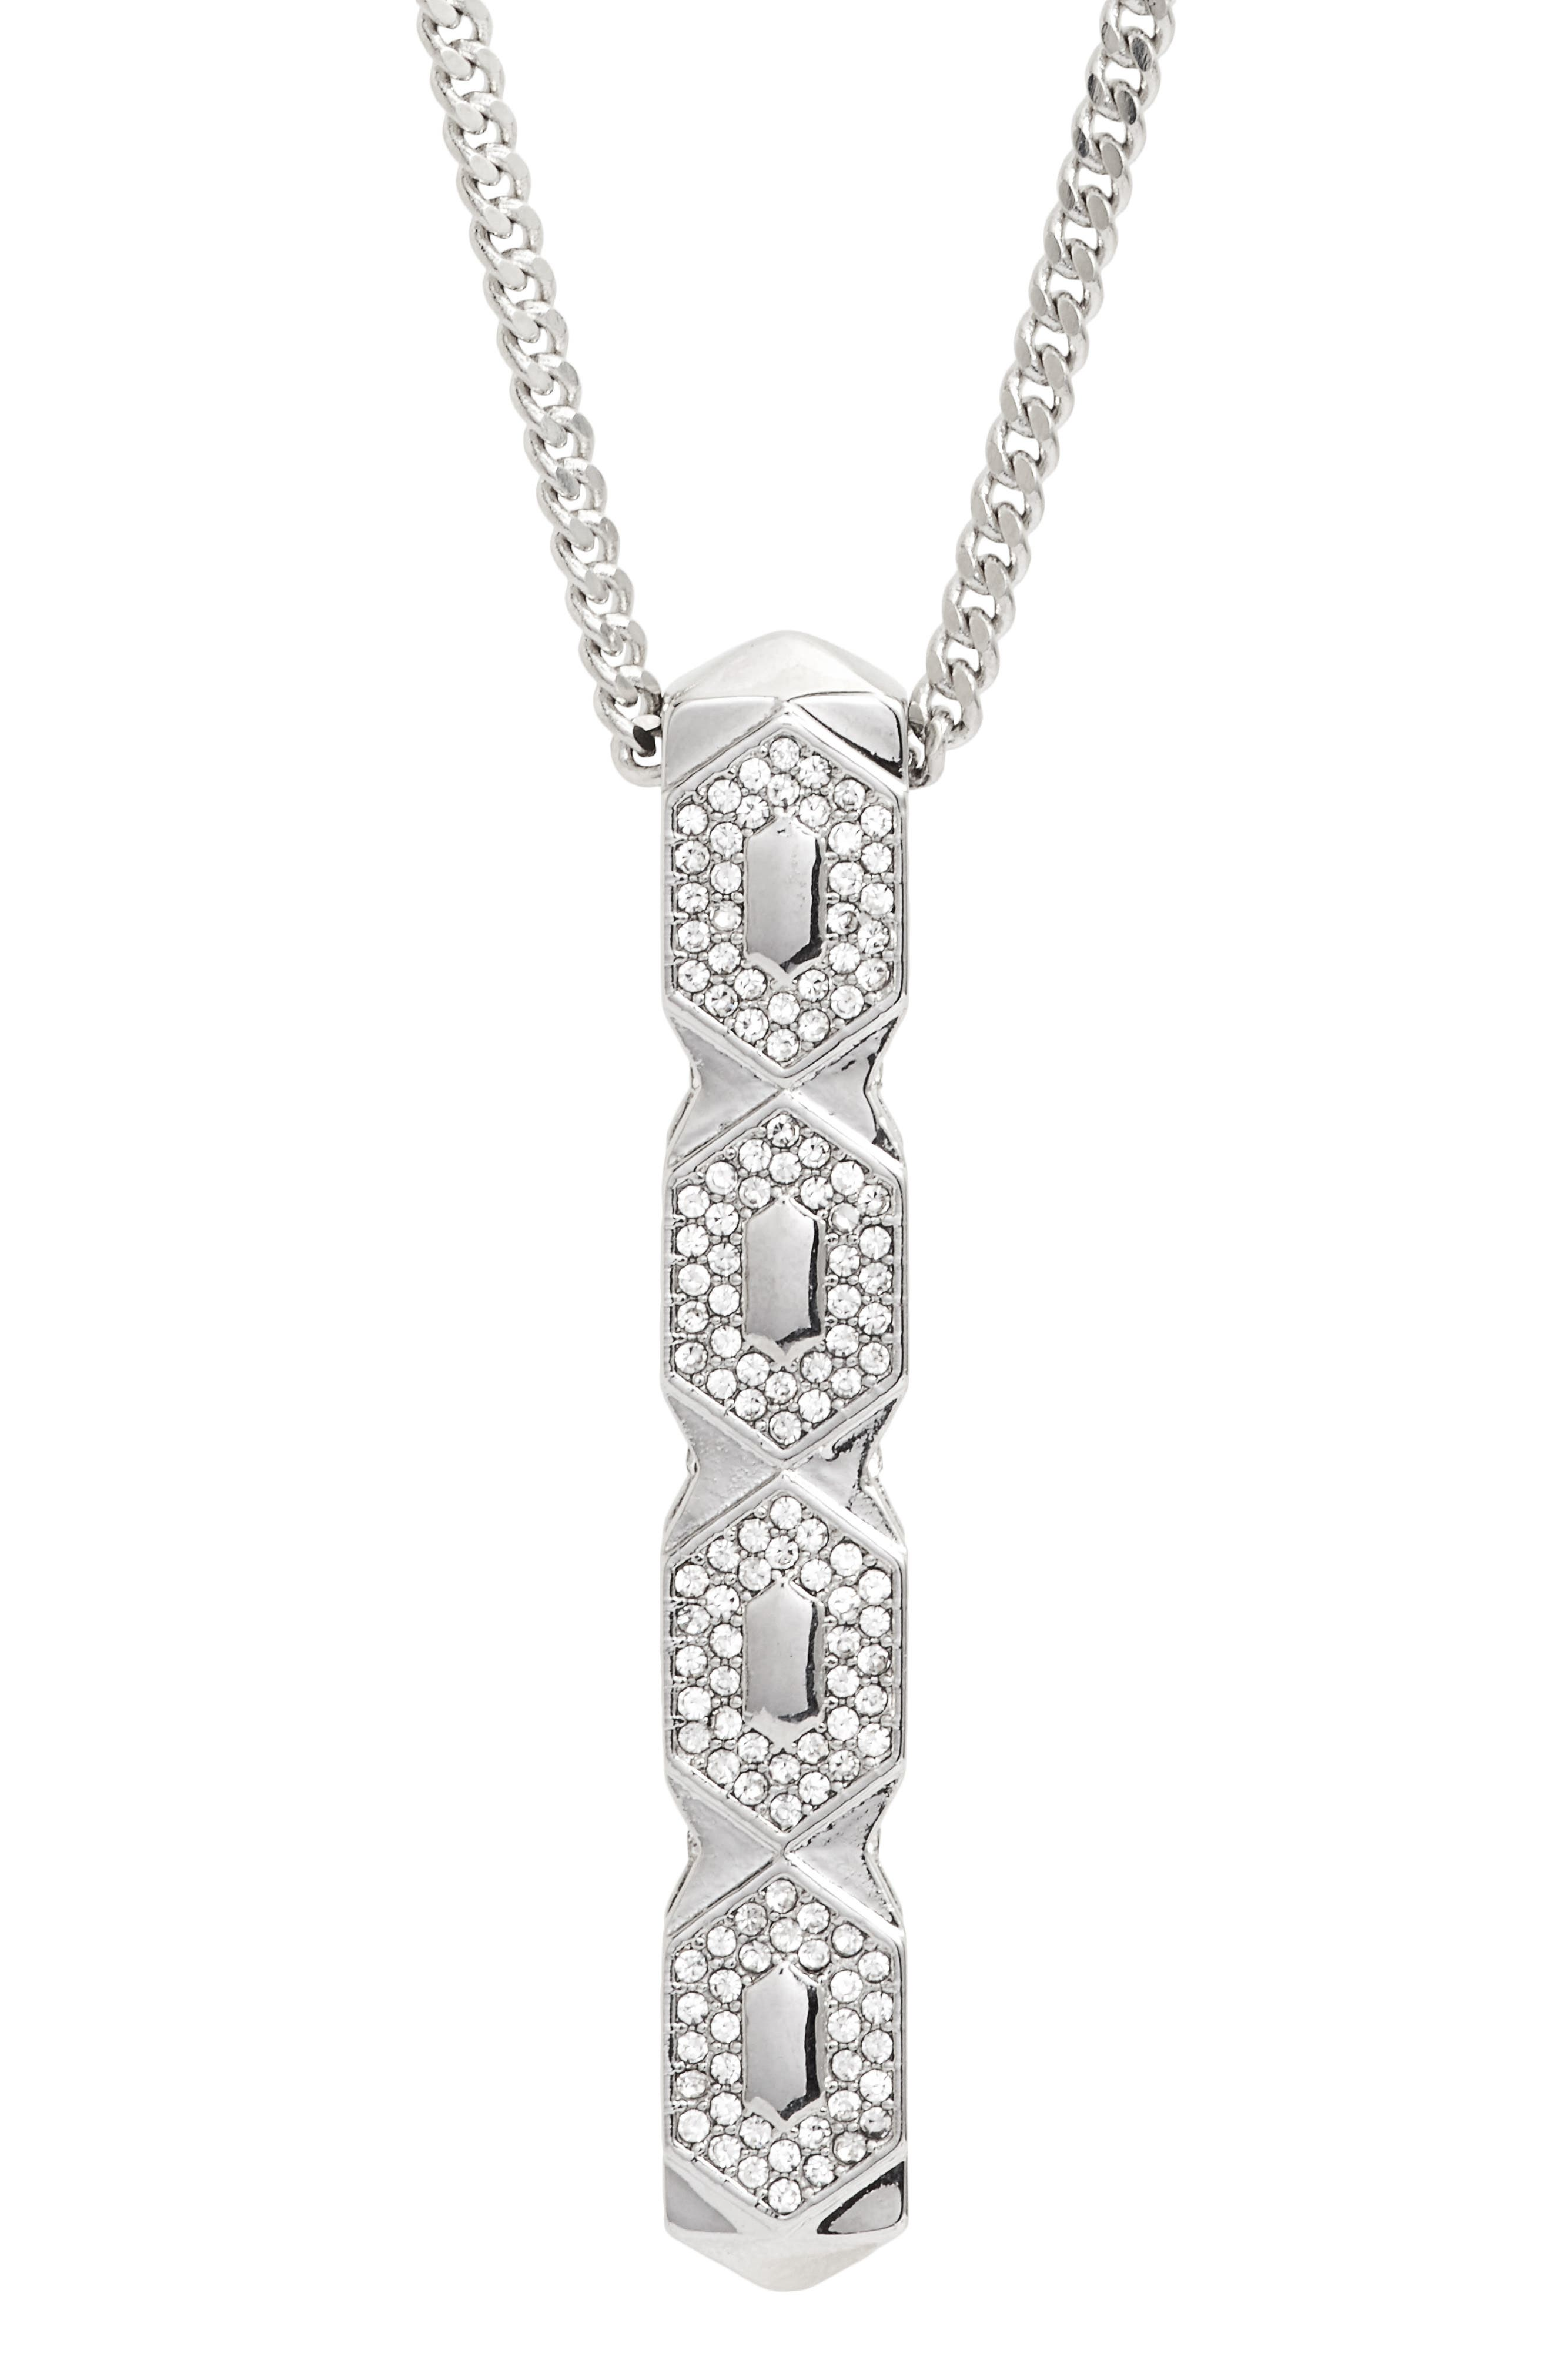 Crystal Pendant Necklace,                             Alternate thumbnail 2, color,                             041